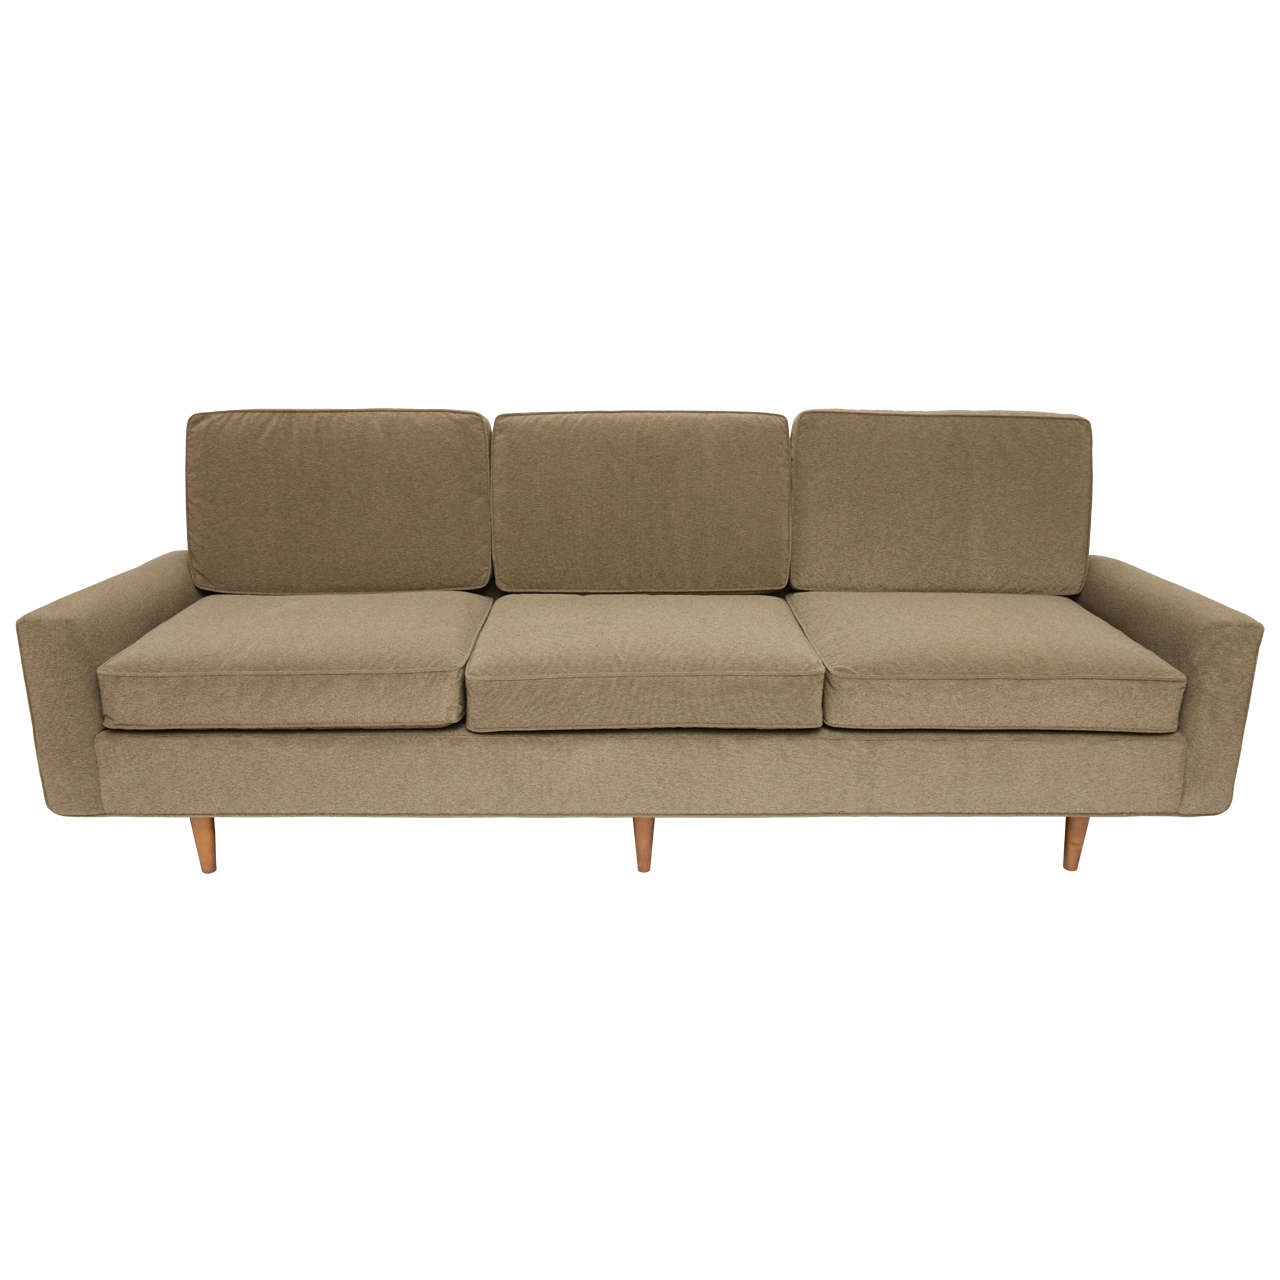 classic early florence knoll three seat sofa at 1stdibs. Black Bedroom Furniture Sets. Home Design Ideas